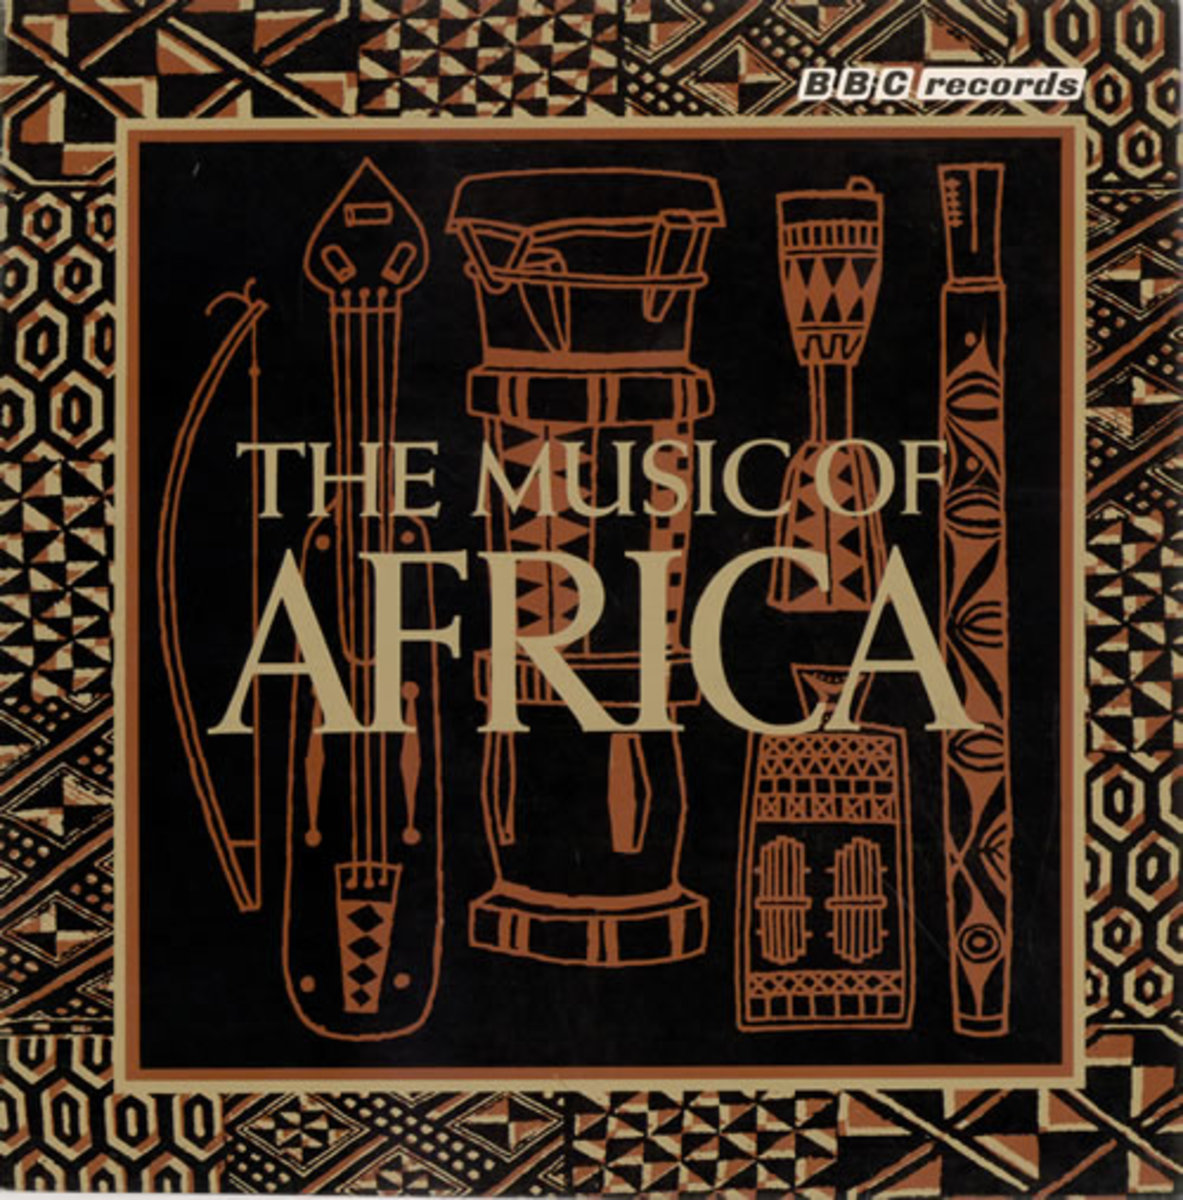 African Sounds and vibes